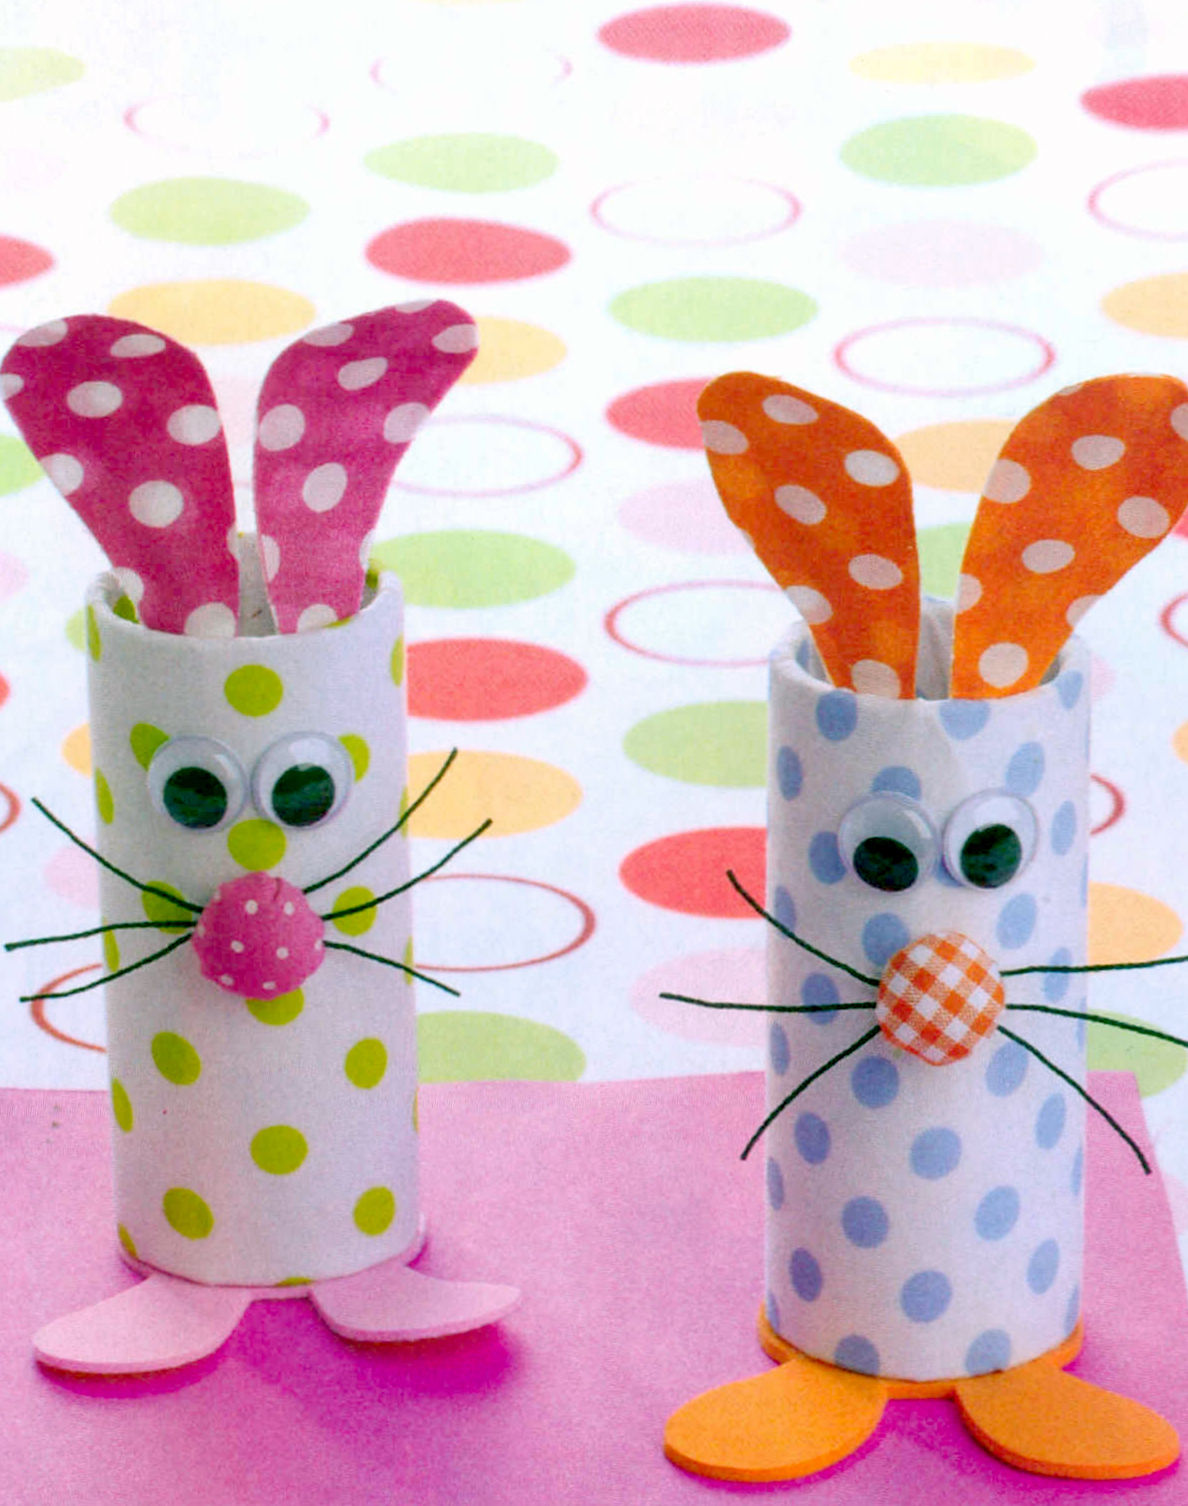 9 Zoo Animal Crafts Design Ideas For Kids | Styles At Life